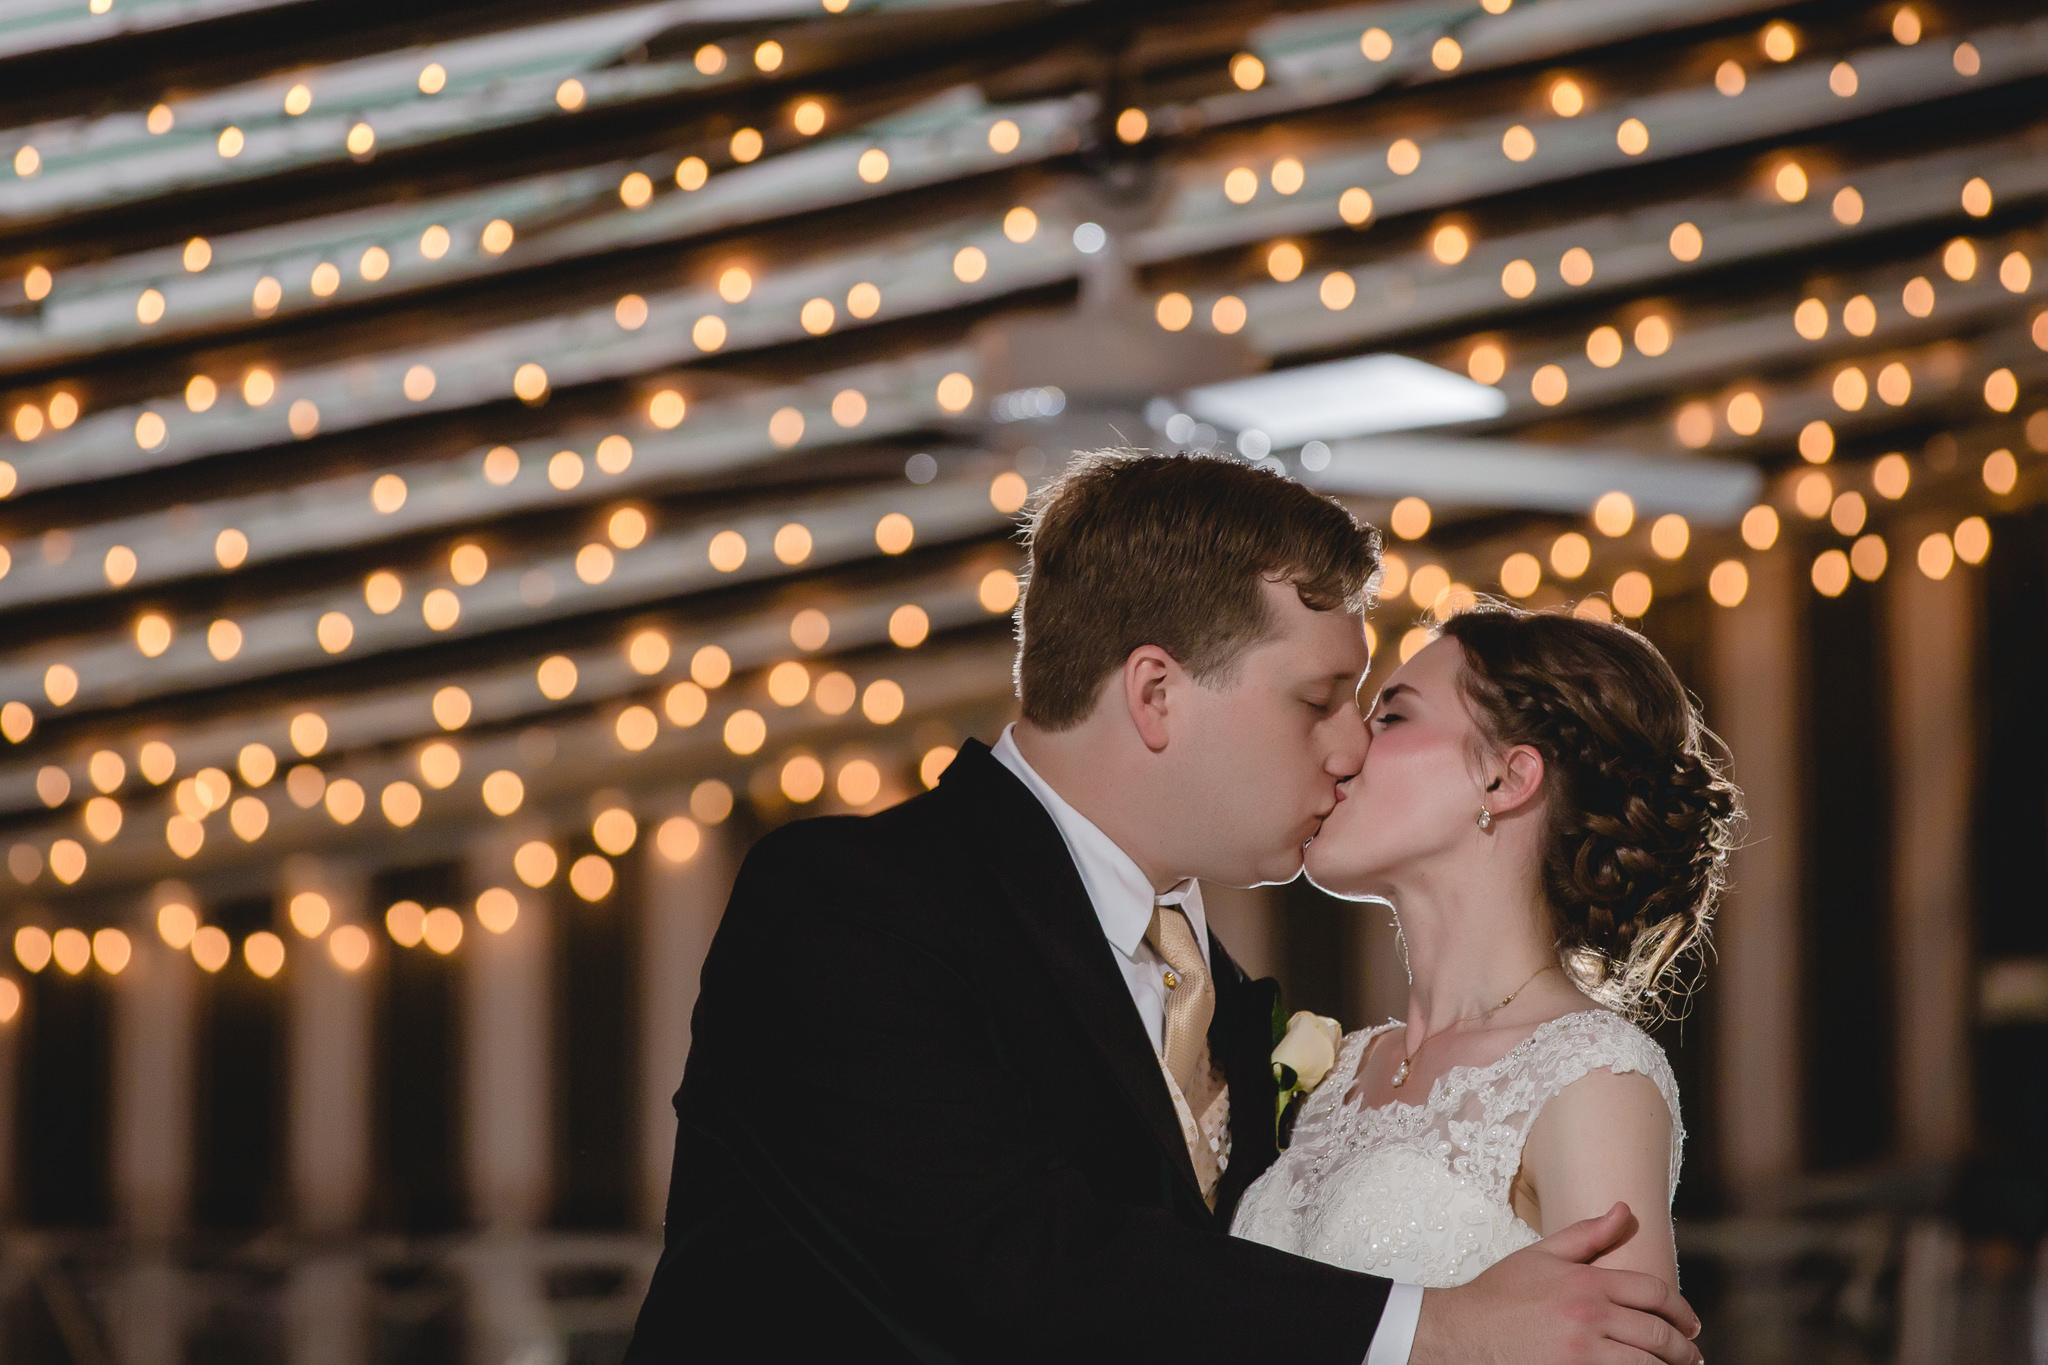 Bride & groom under string lights at night at Shannopin Country Club